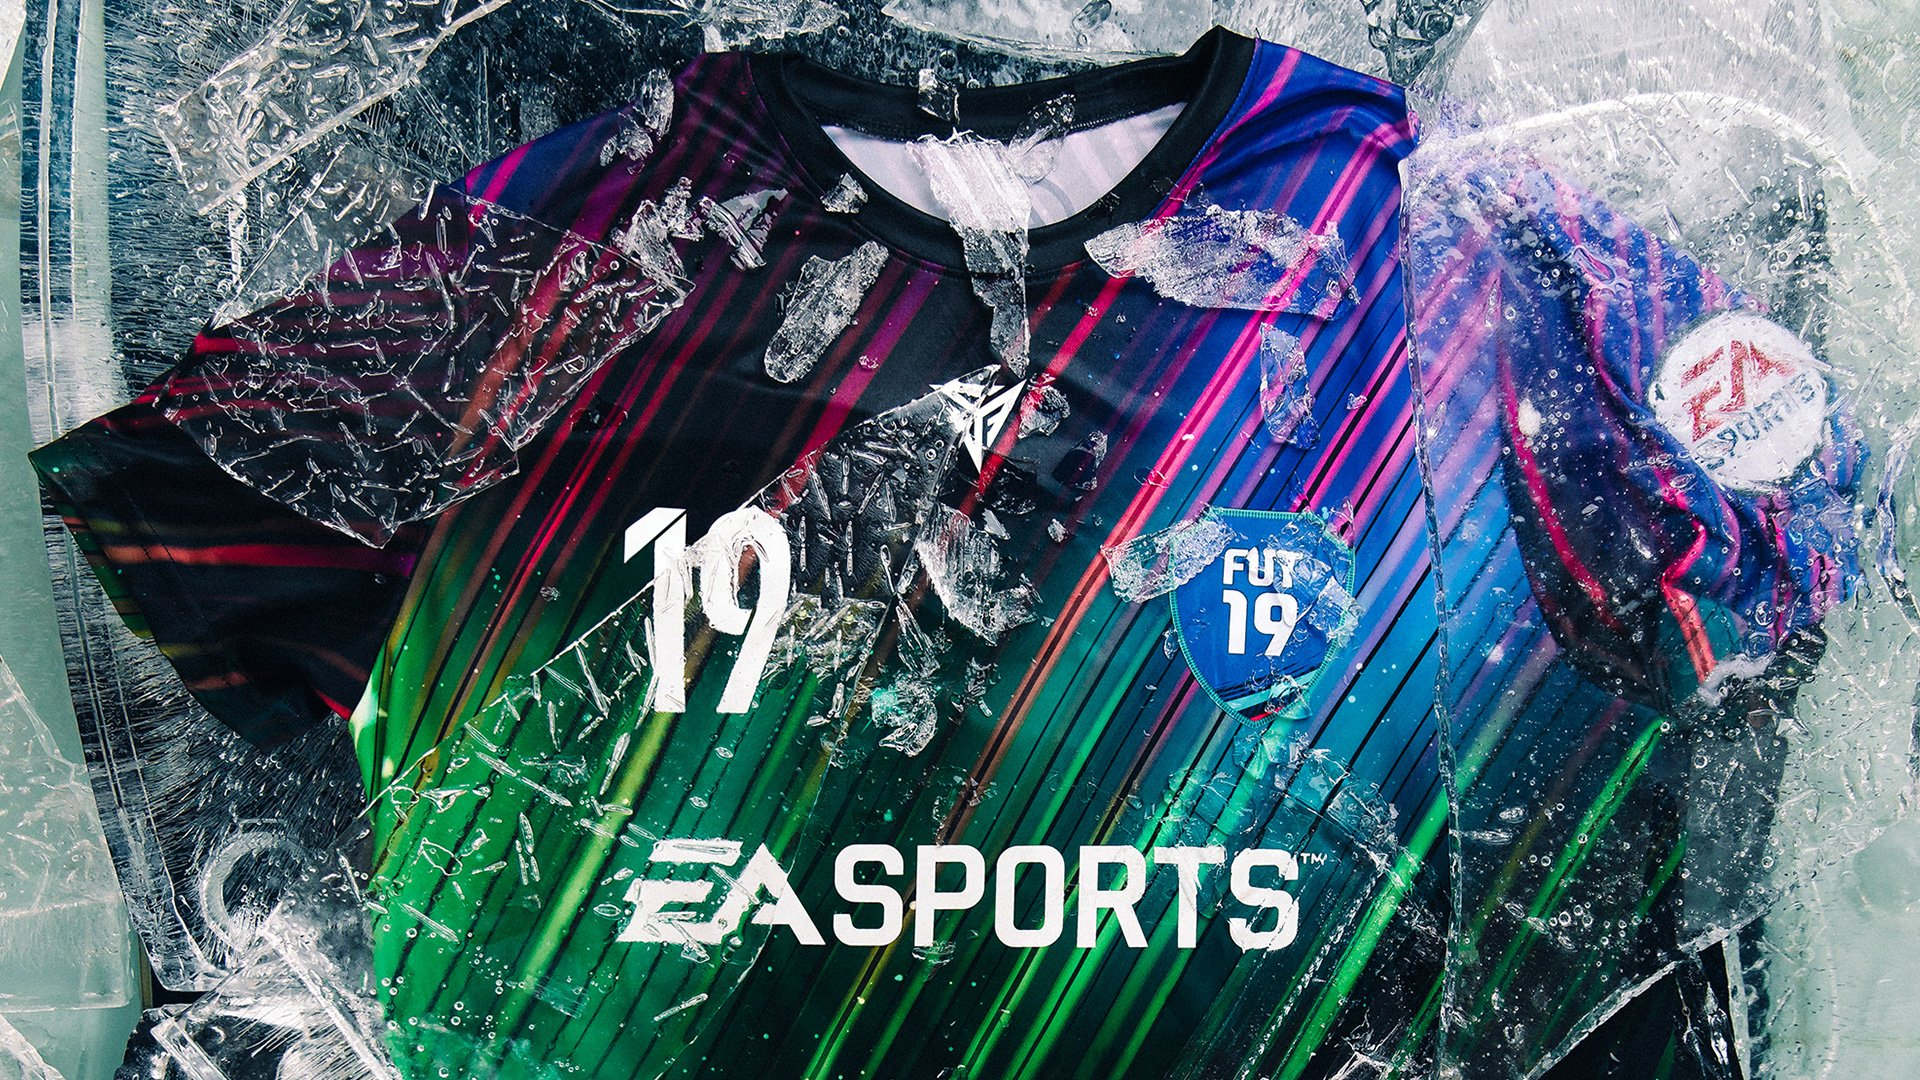 Northern Lights EA SPORTS shirt | Lees er meer over bij